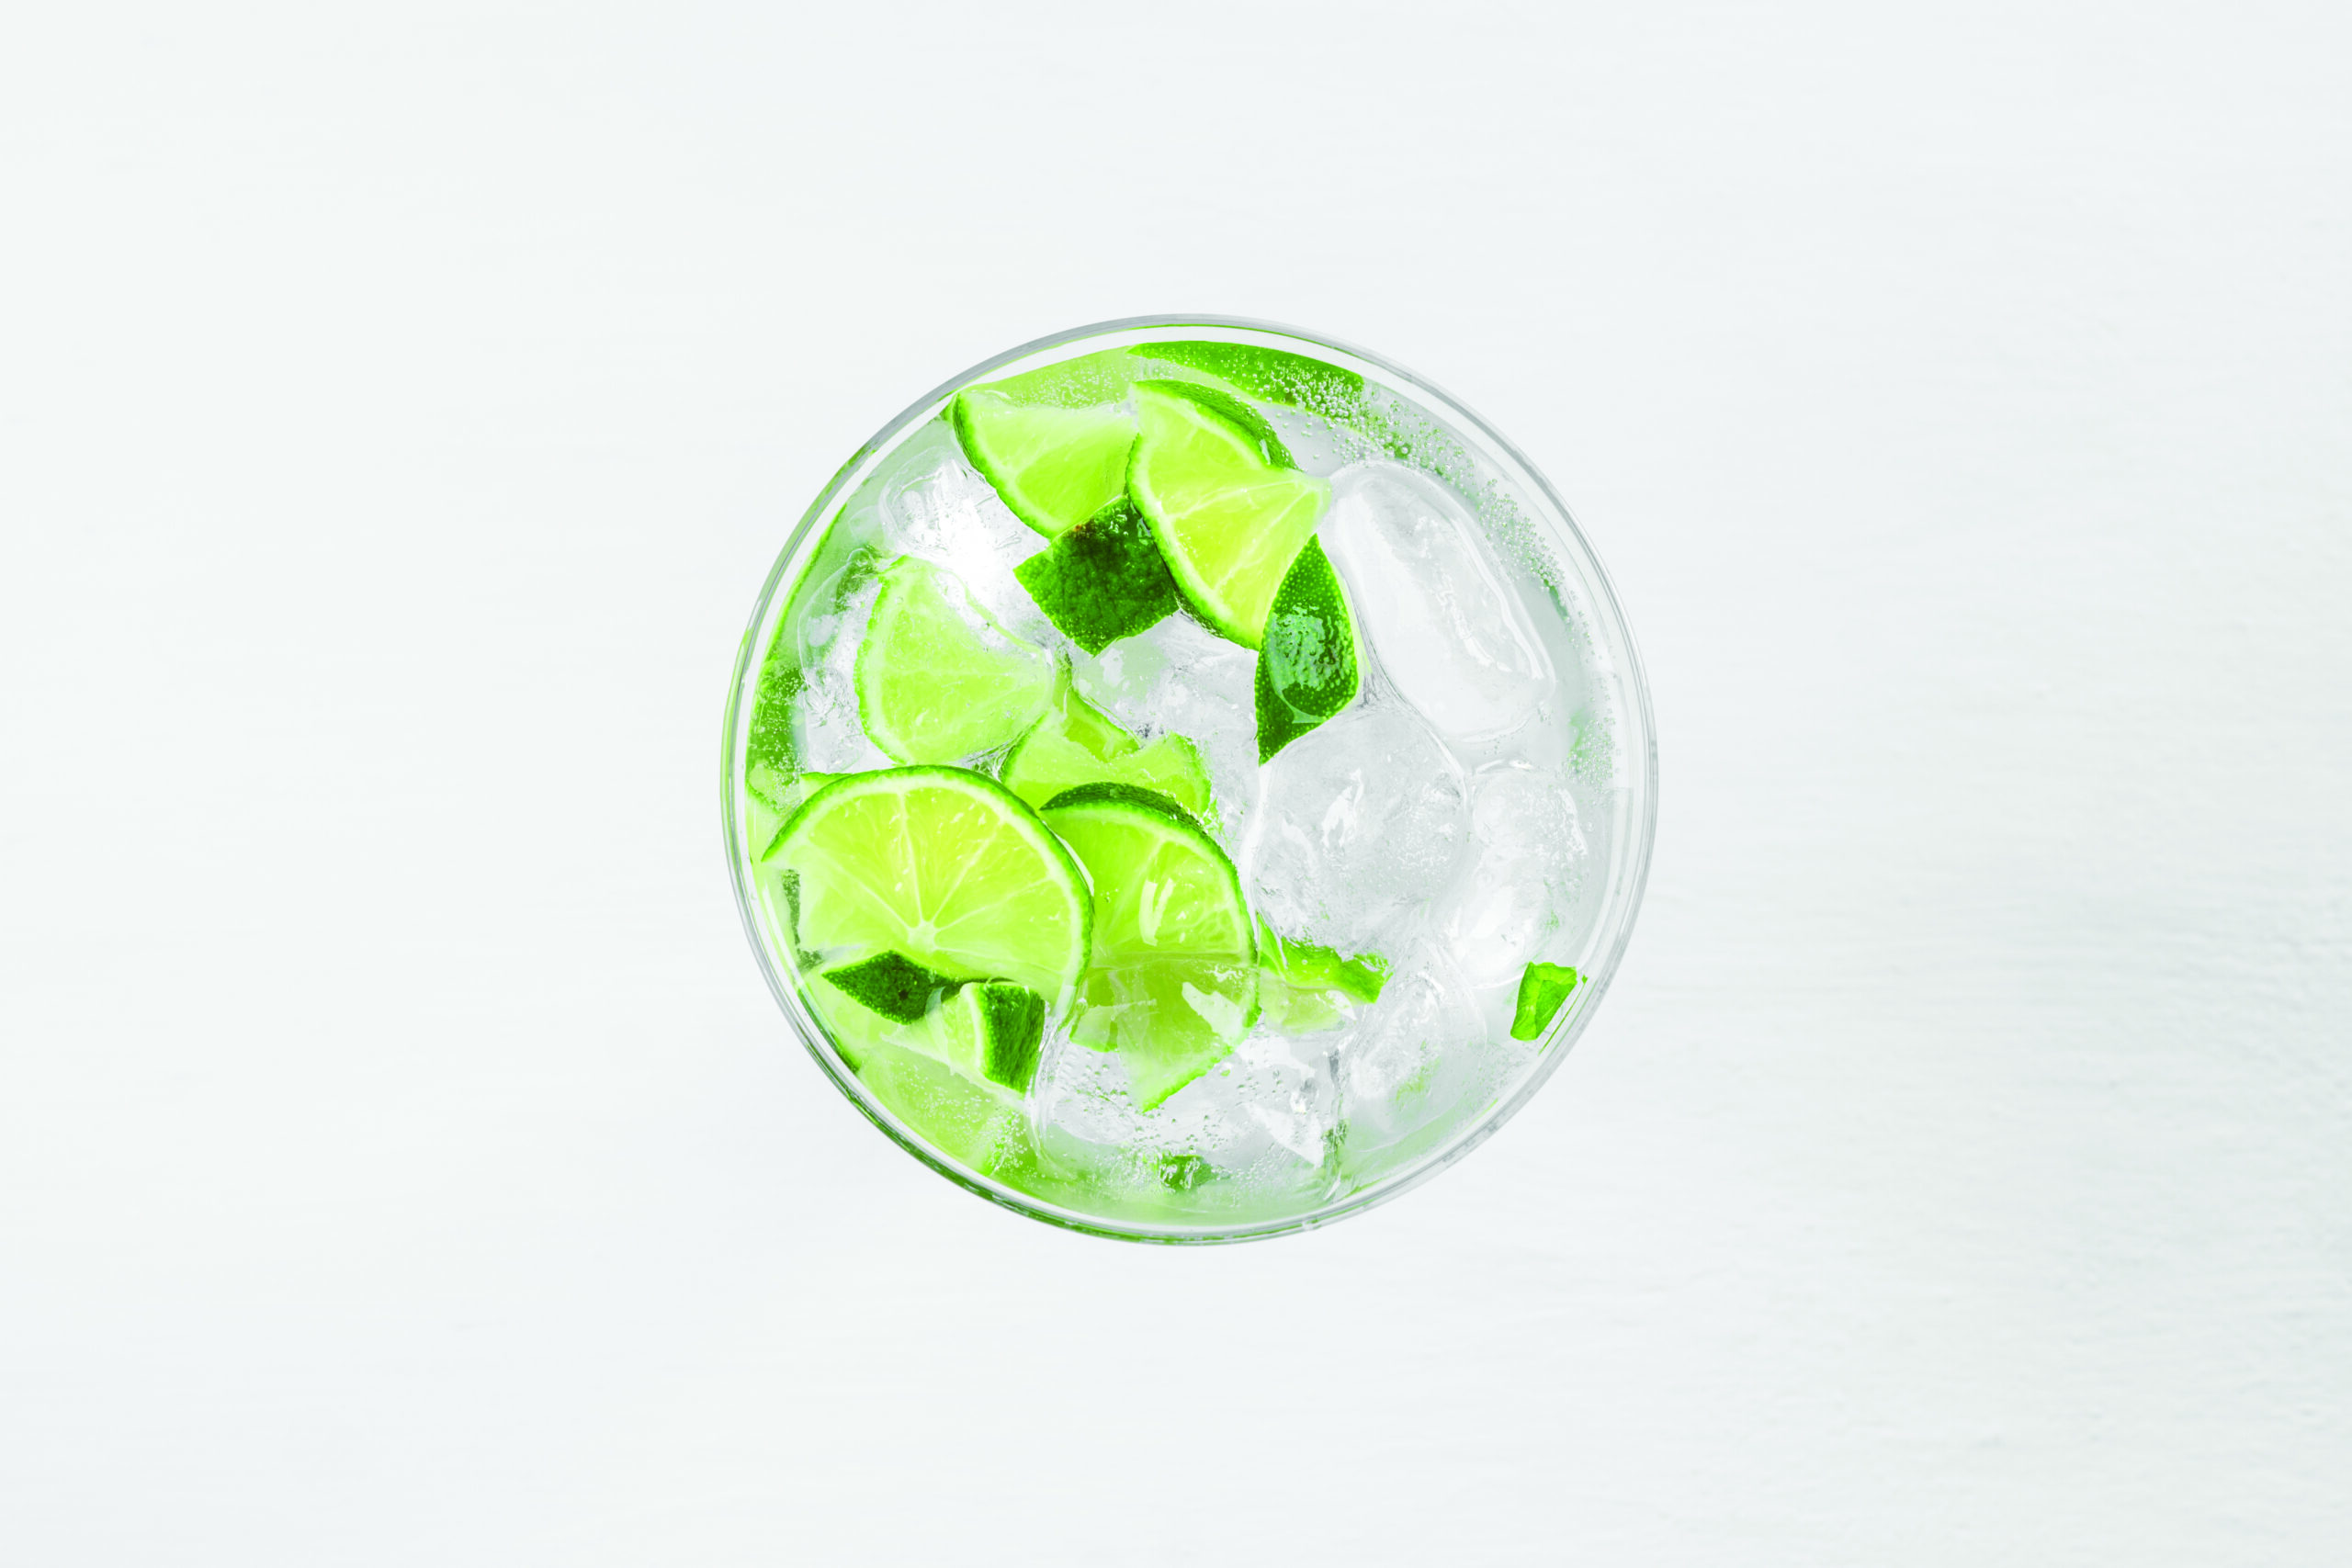 Fresh cocktail with lime slices